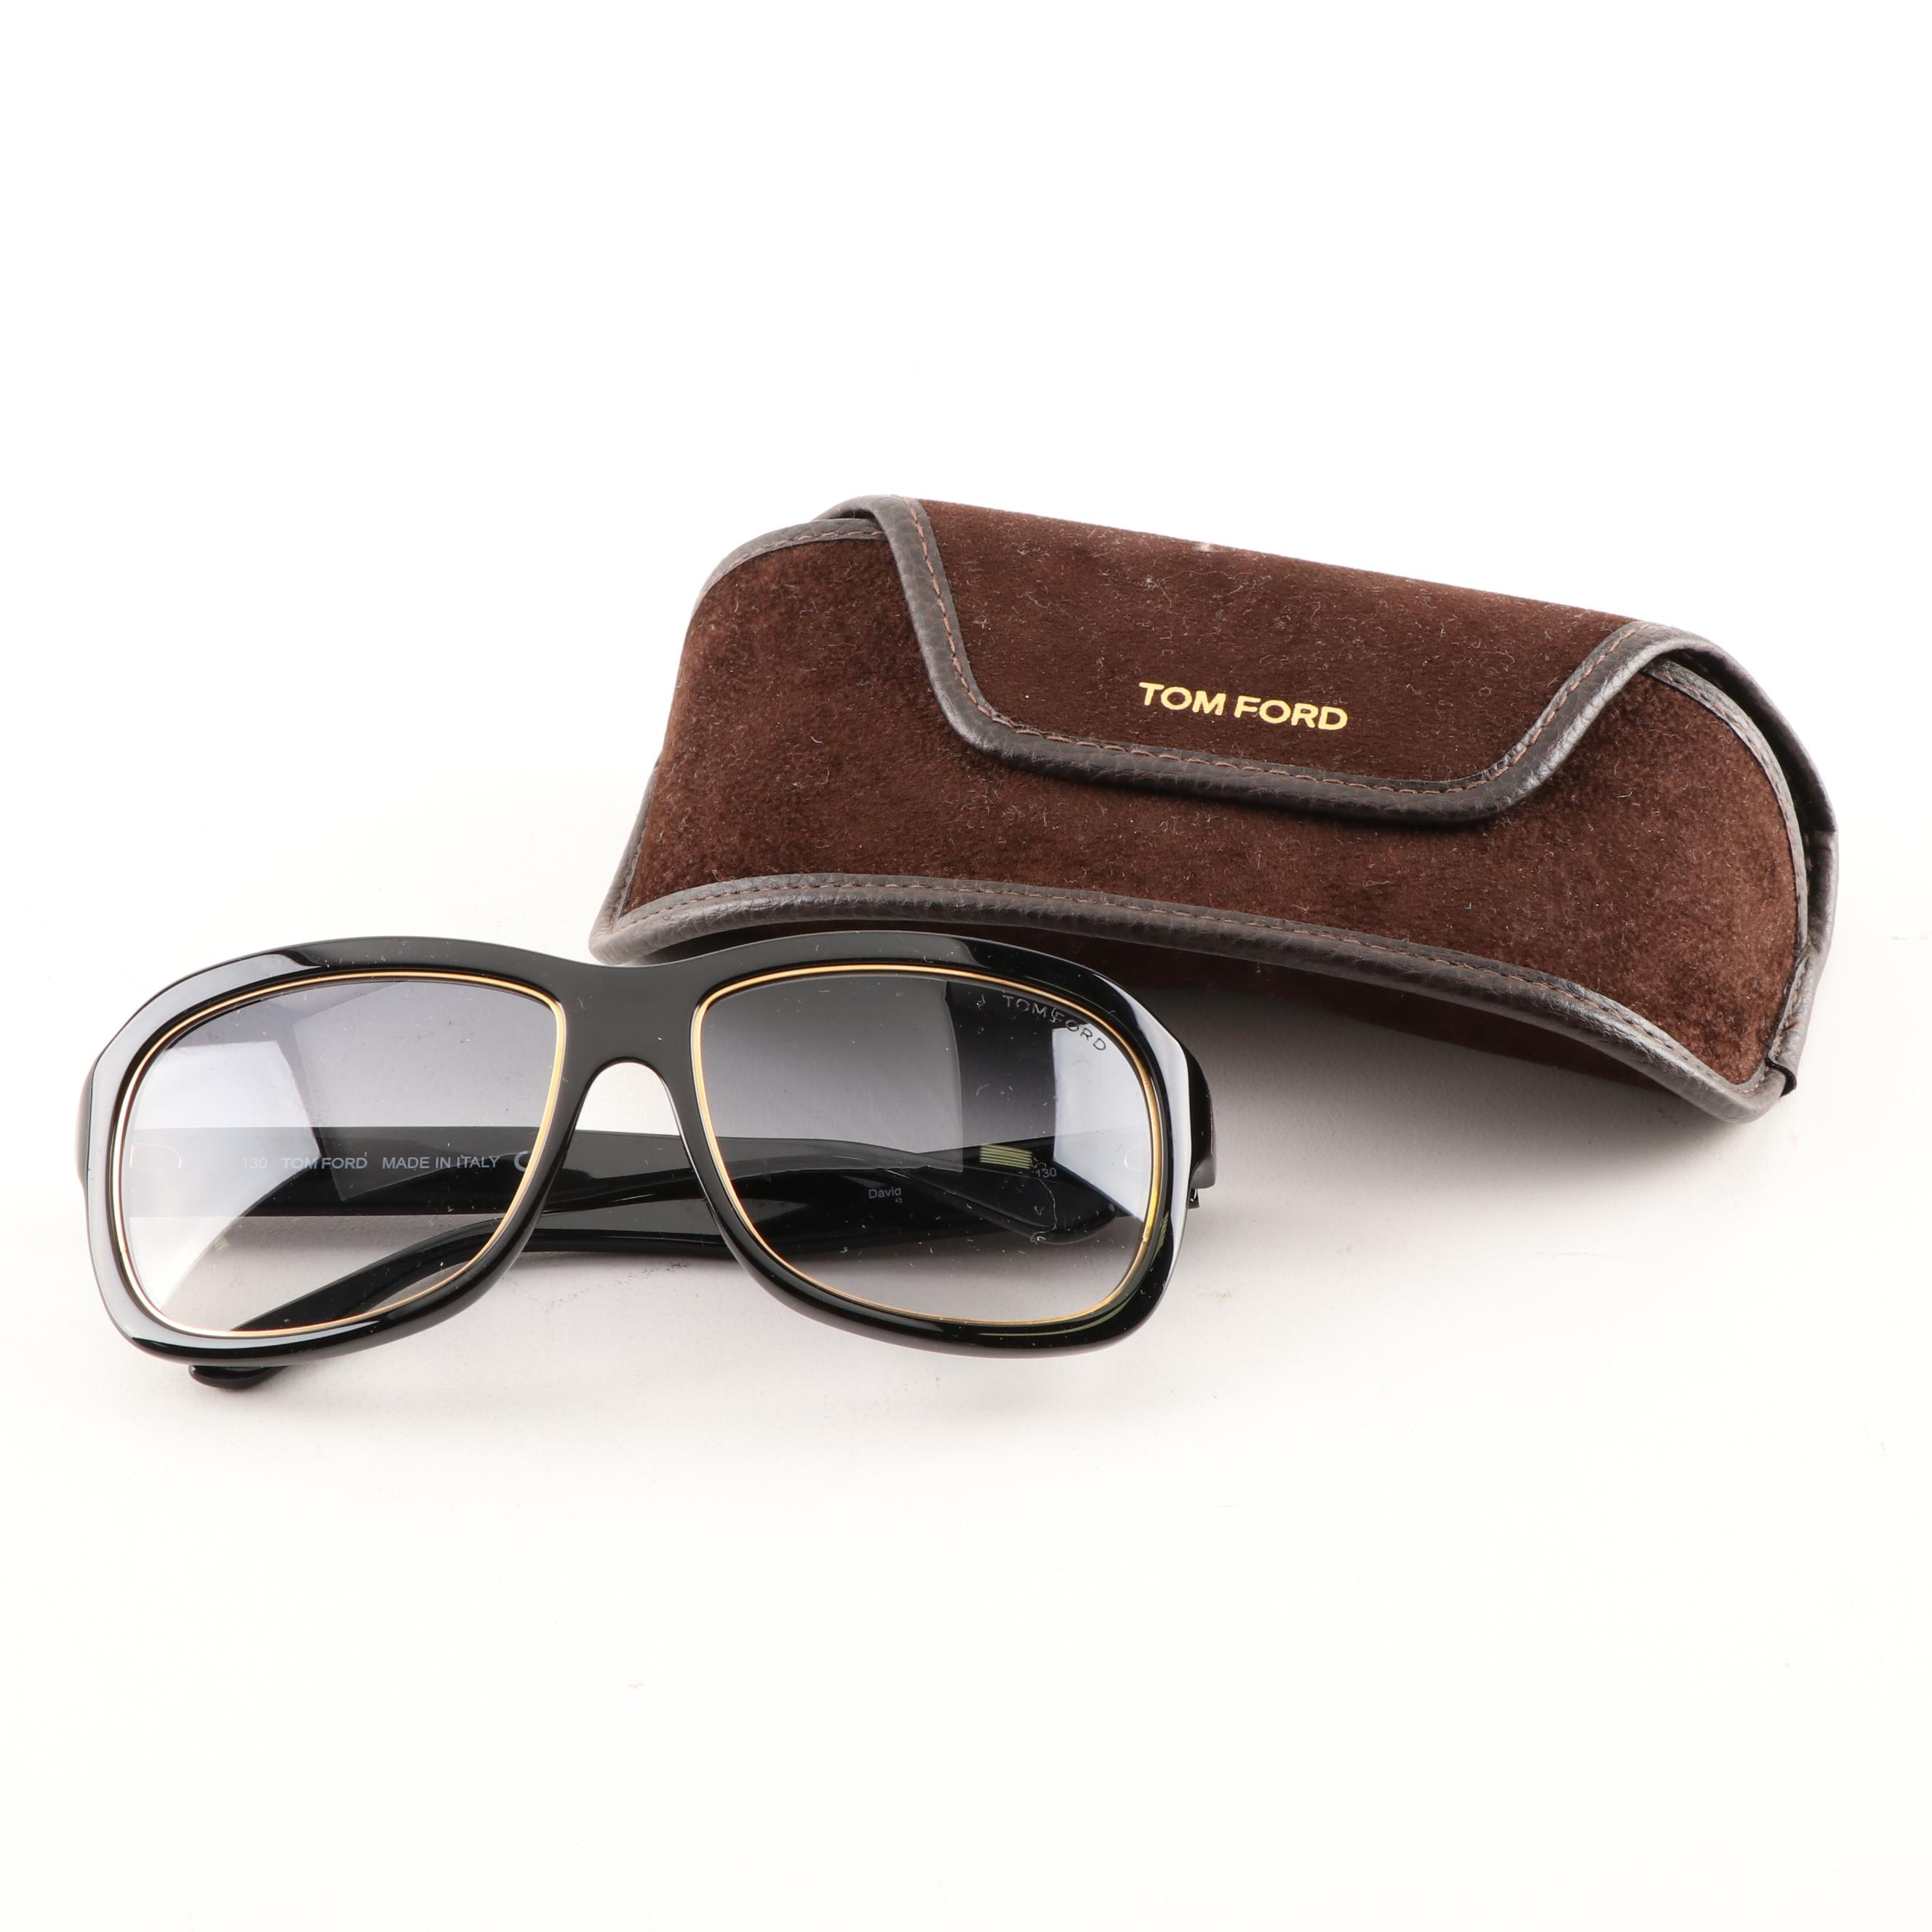 "Tom Ford ""David"" Sunglasses with Case"